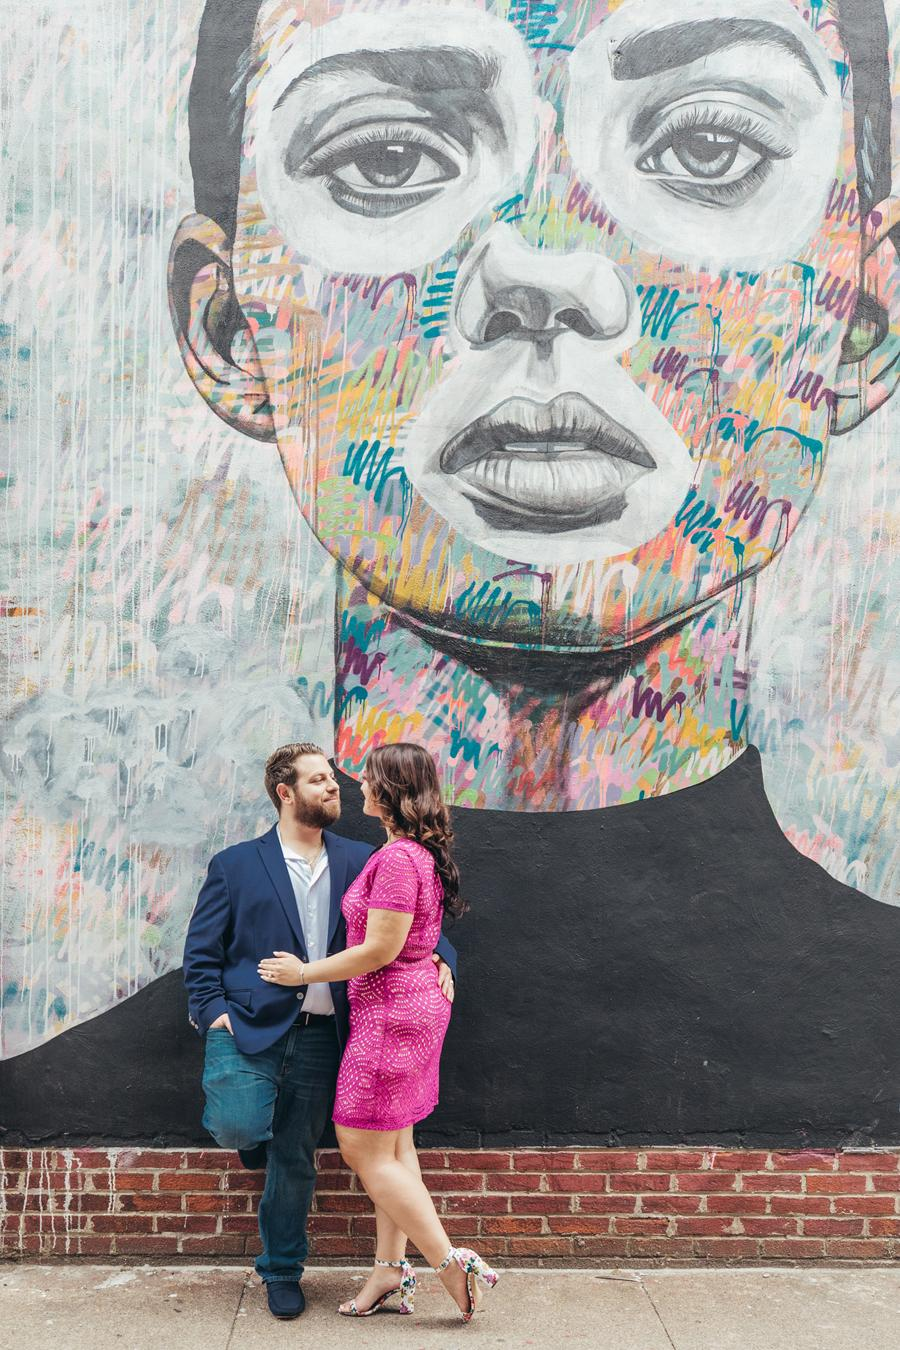 Mural Arts Engagement Session in Fishtown Kseniya Berson Photography Philly In Love Philadelphia Wedding Blog Venues Vendors